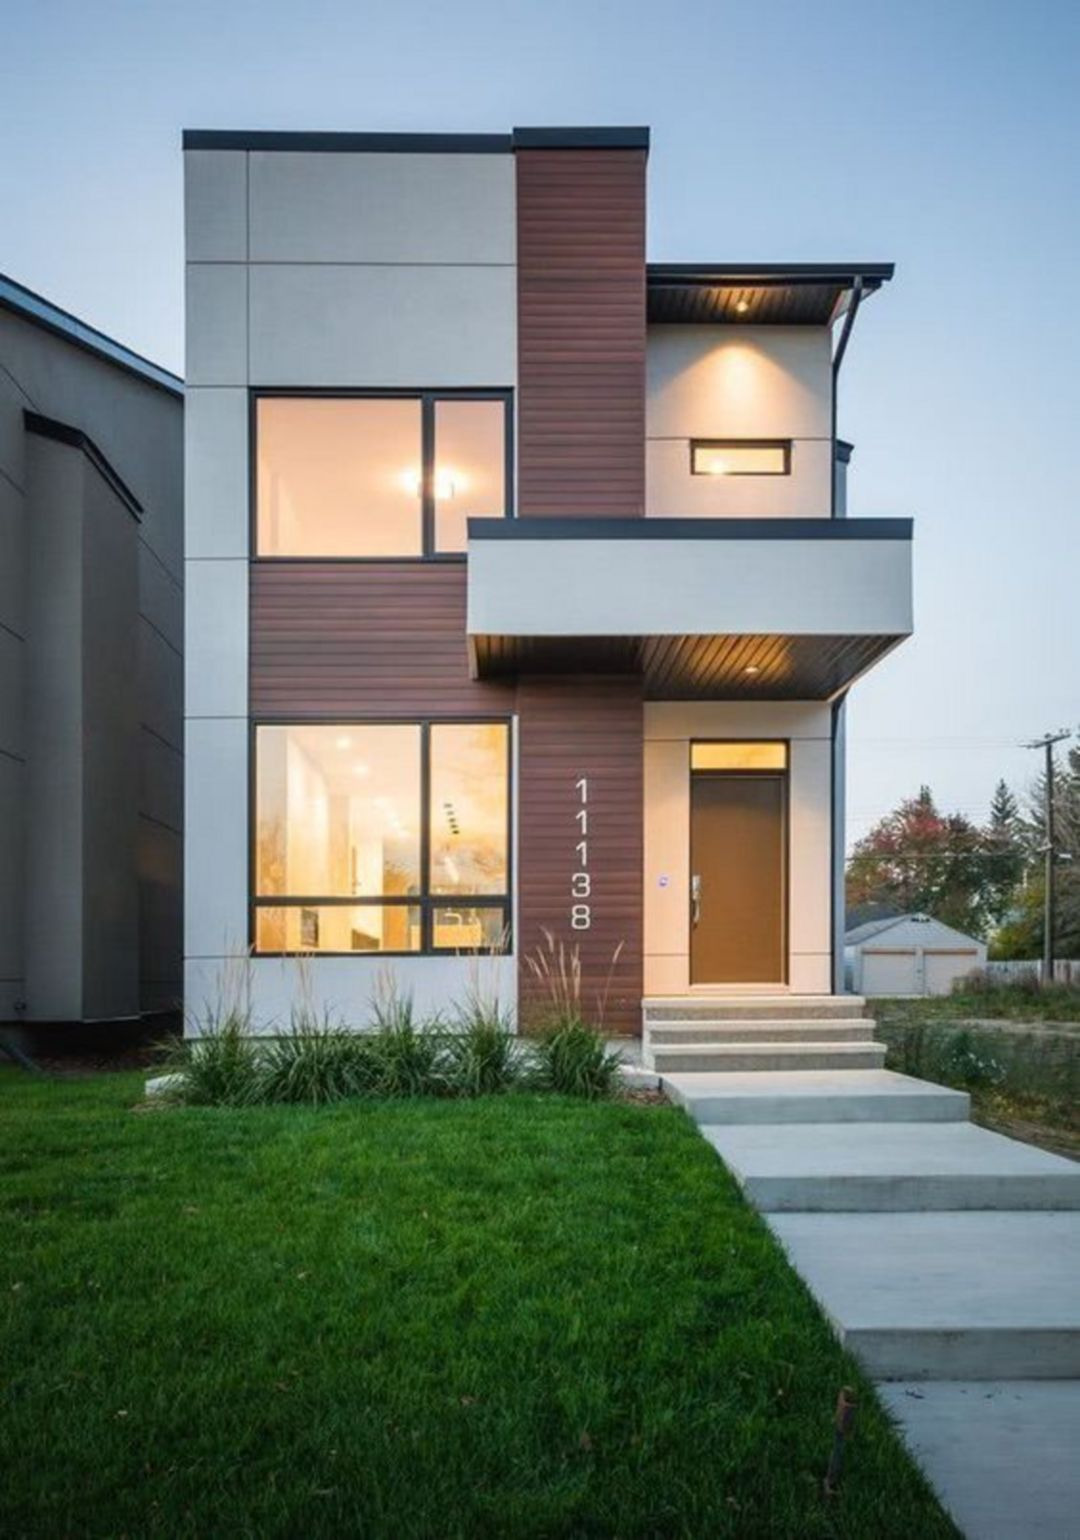 Pictures Of Small Modern Houses Fresh 13 Modern Minimalist Tiny House Design Ideas for Your